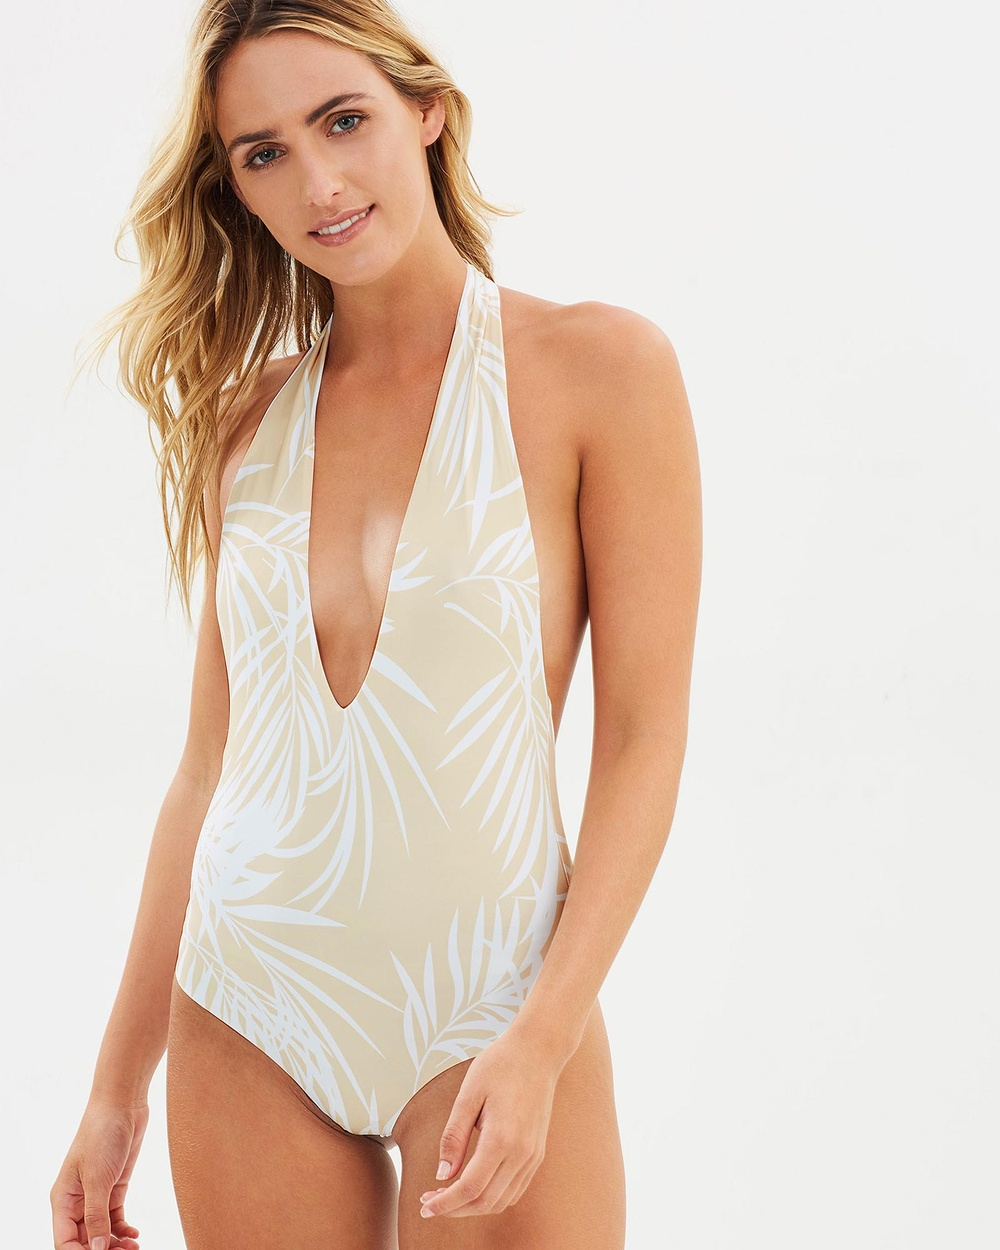 Bond-Eye Swimwear Dive In Reversible One Piece One-Piece / Swimsuit Honey Dip Dive In Reversible One-Piece